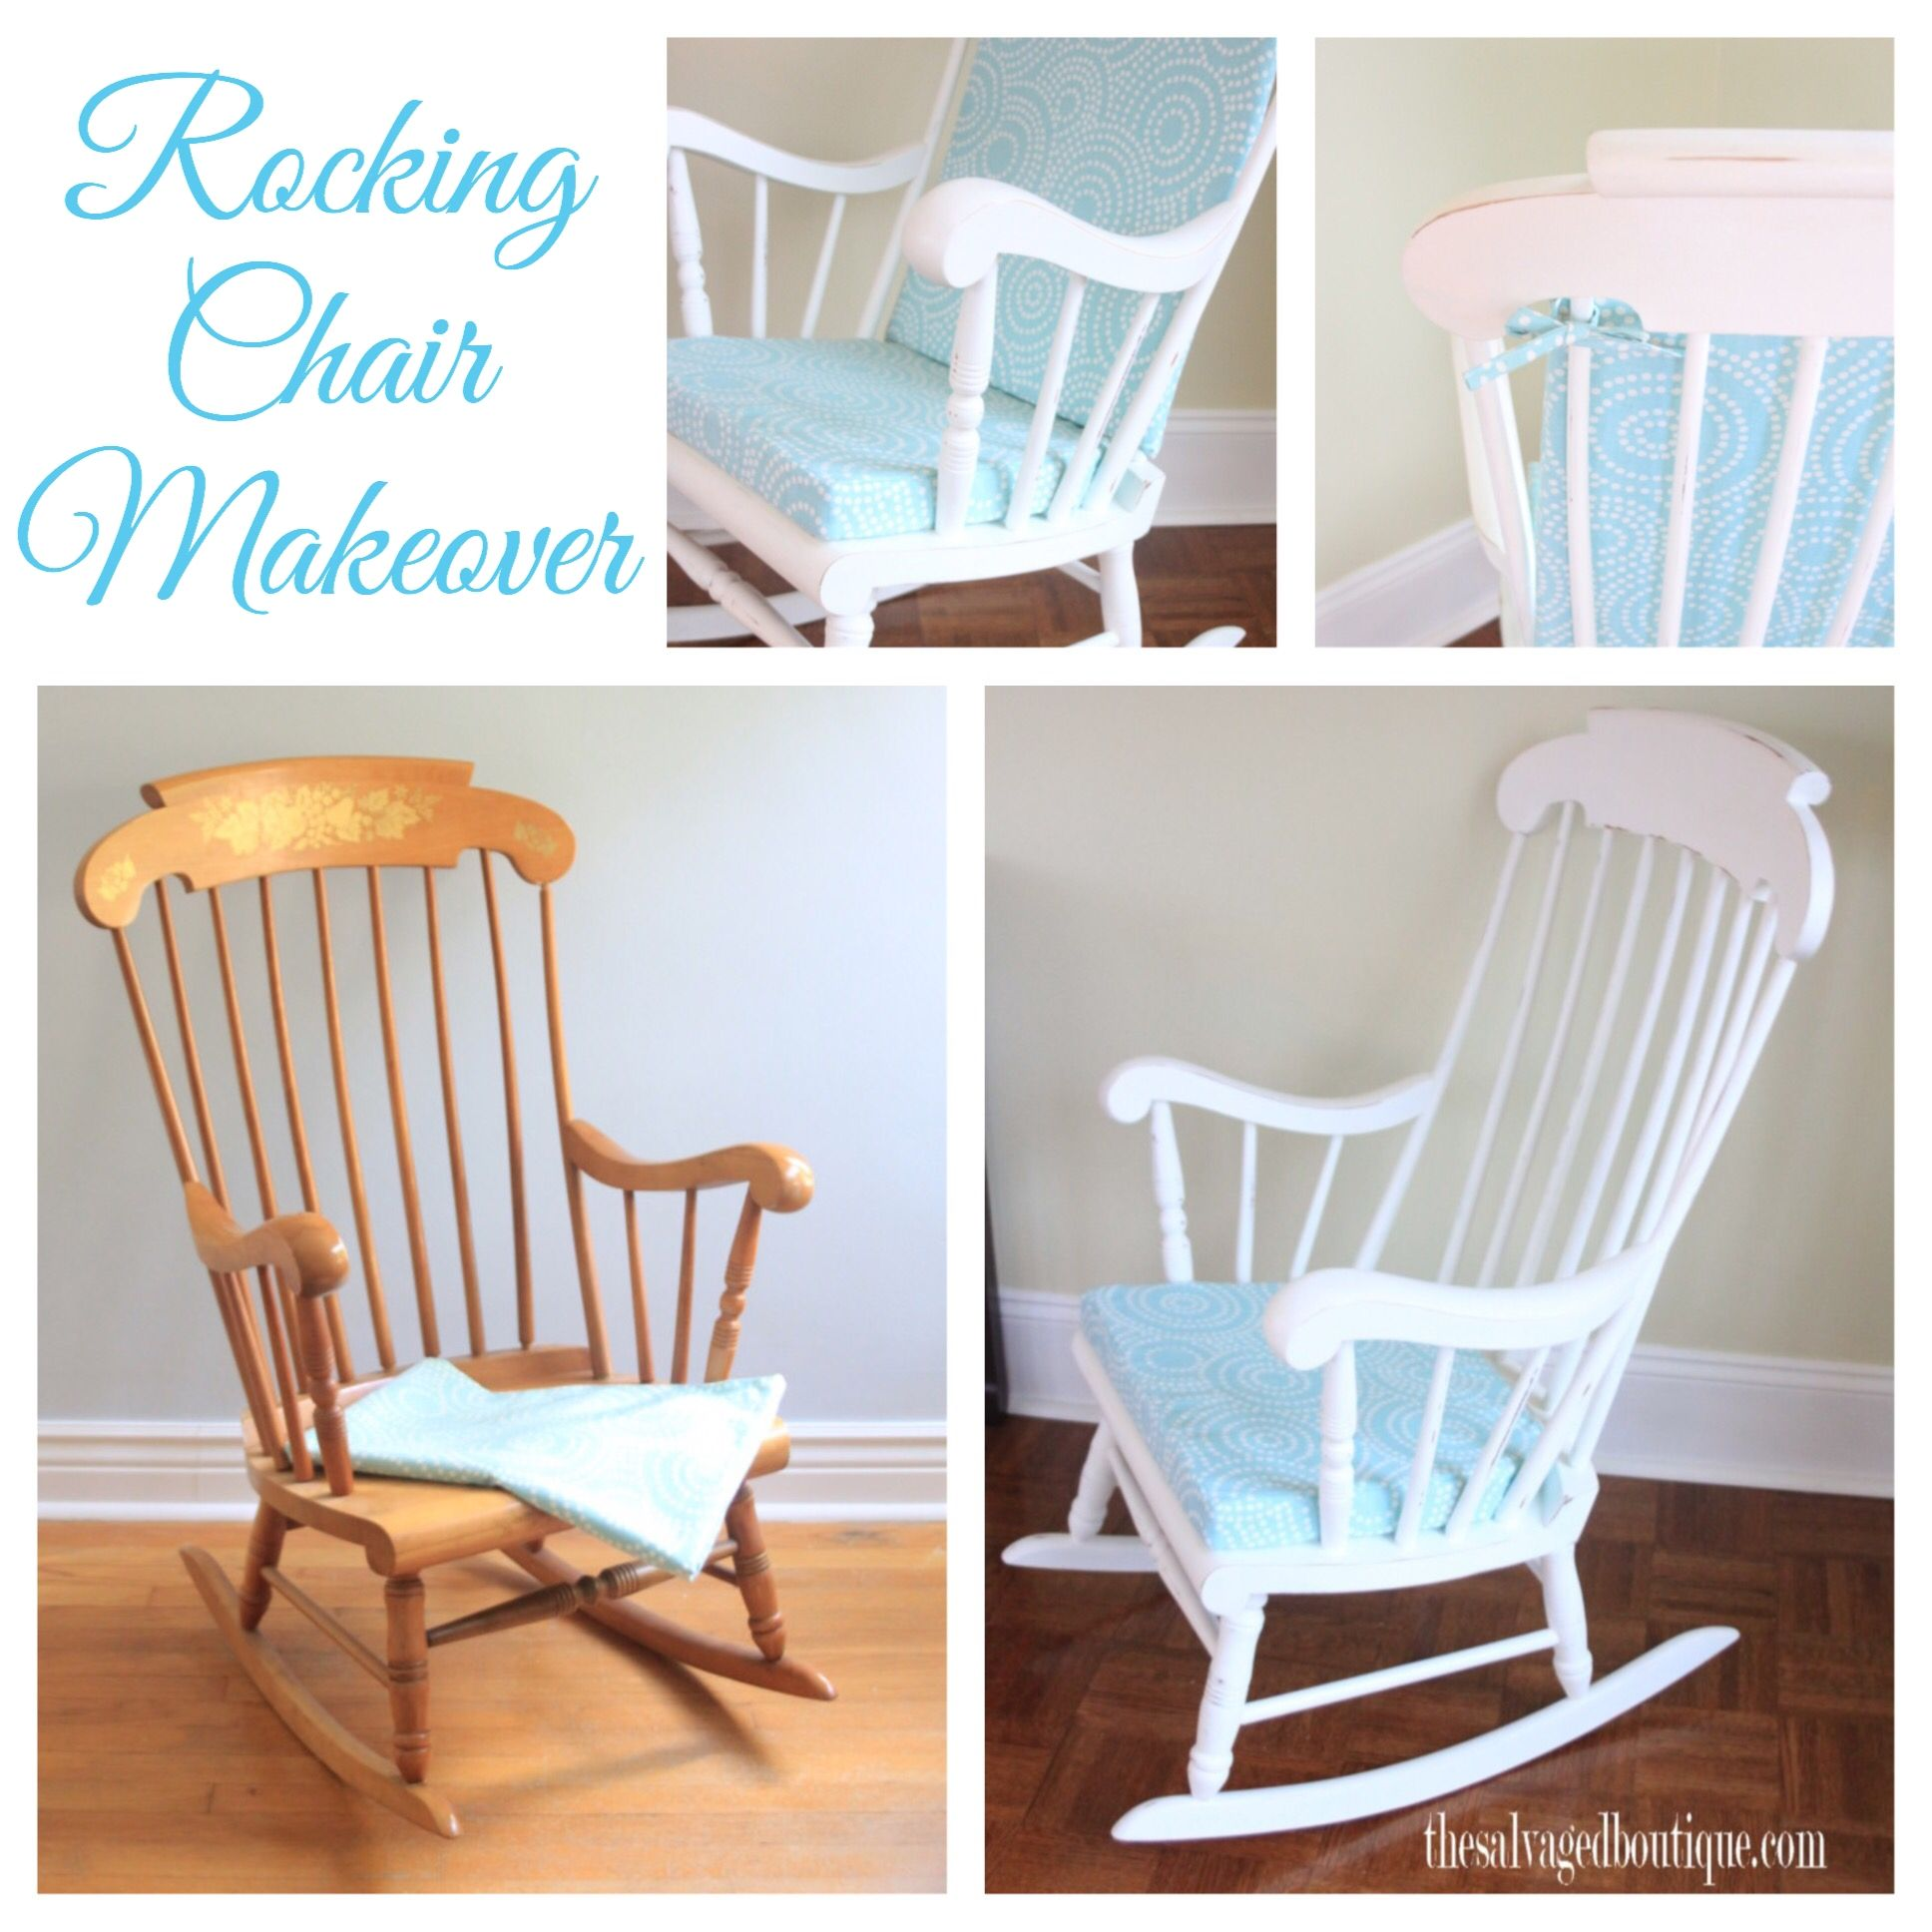 Nursery Wooden Rocking Chair Vintage Rocking Chair Makeover For A Baby Nursery Annie Sloan